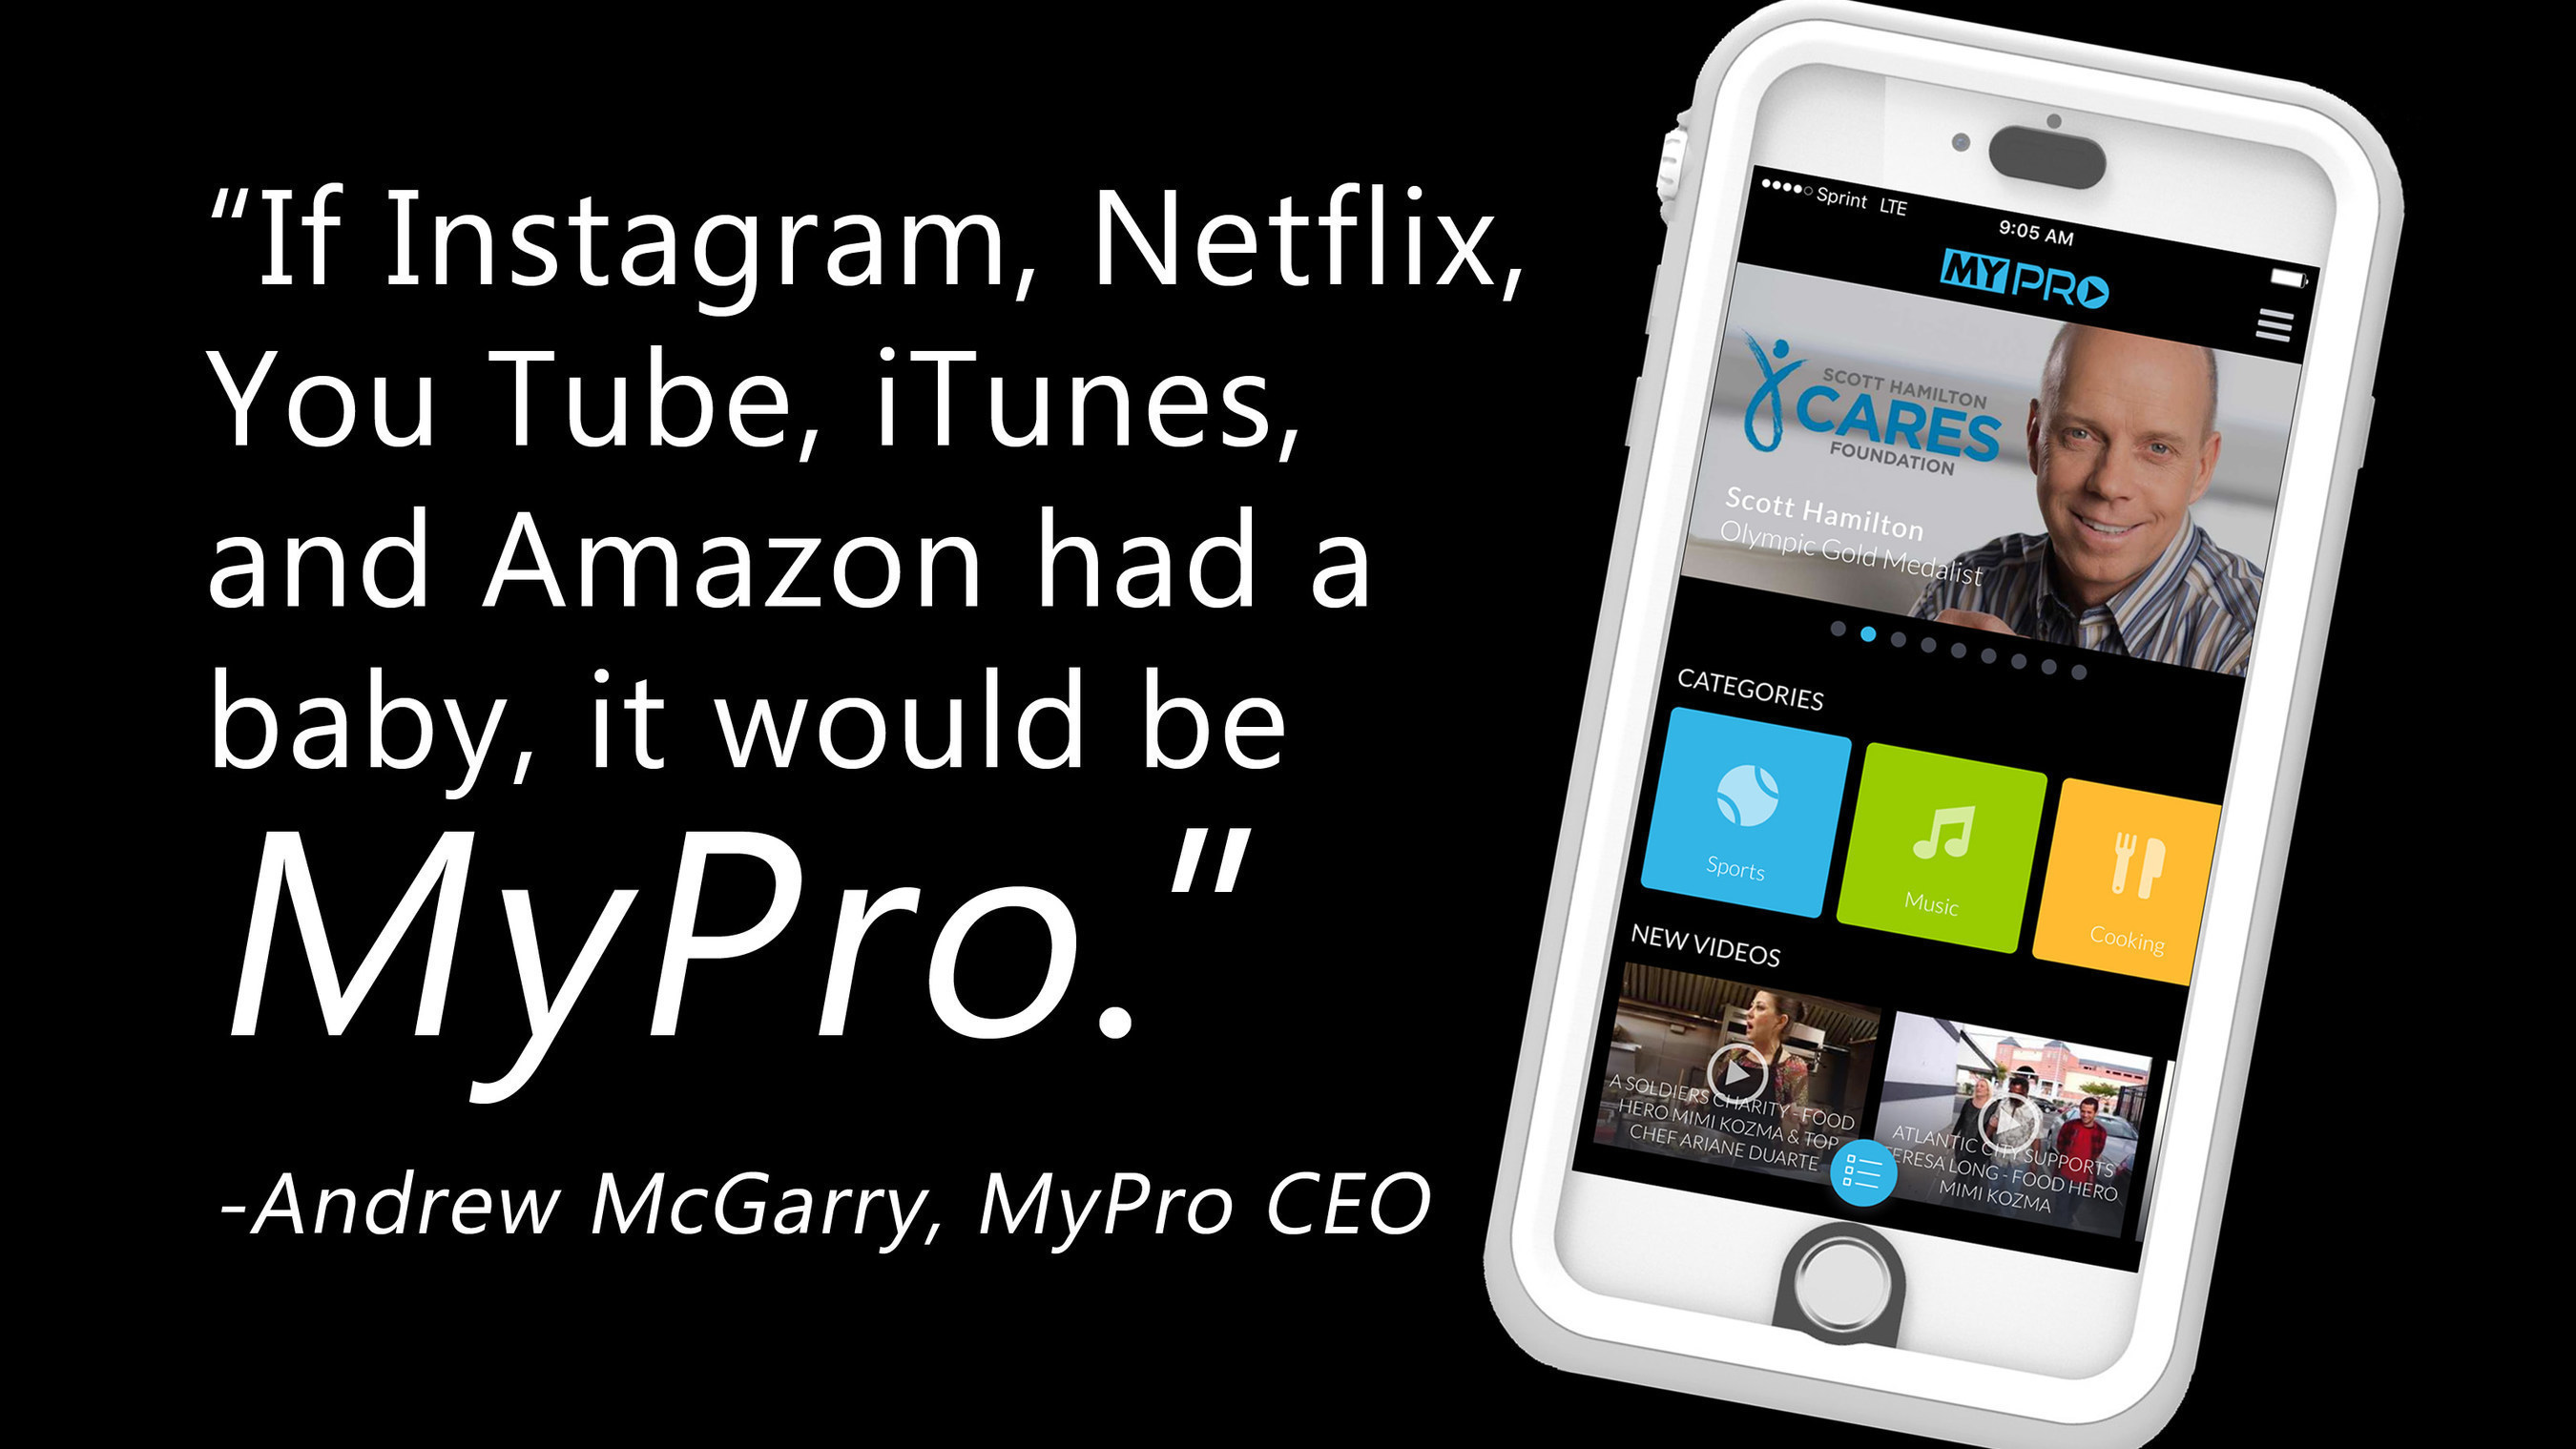 MyPro's website and apps create a compelling landscape for content creators globally.